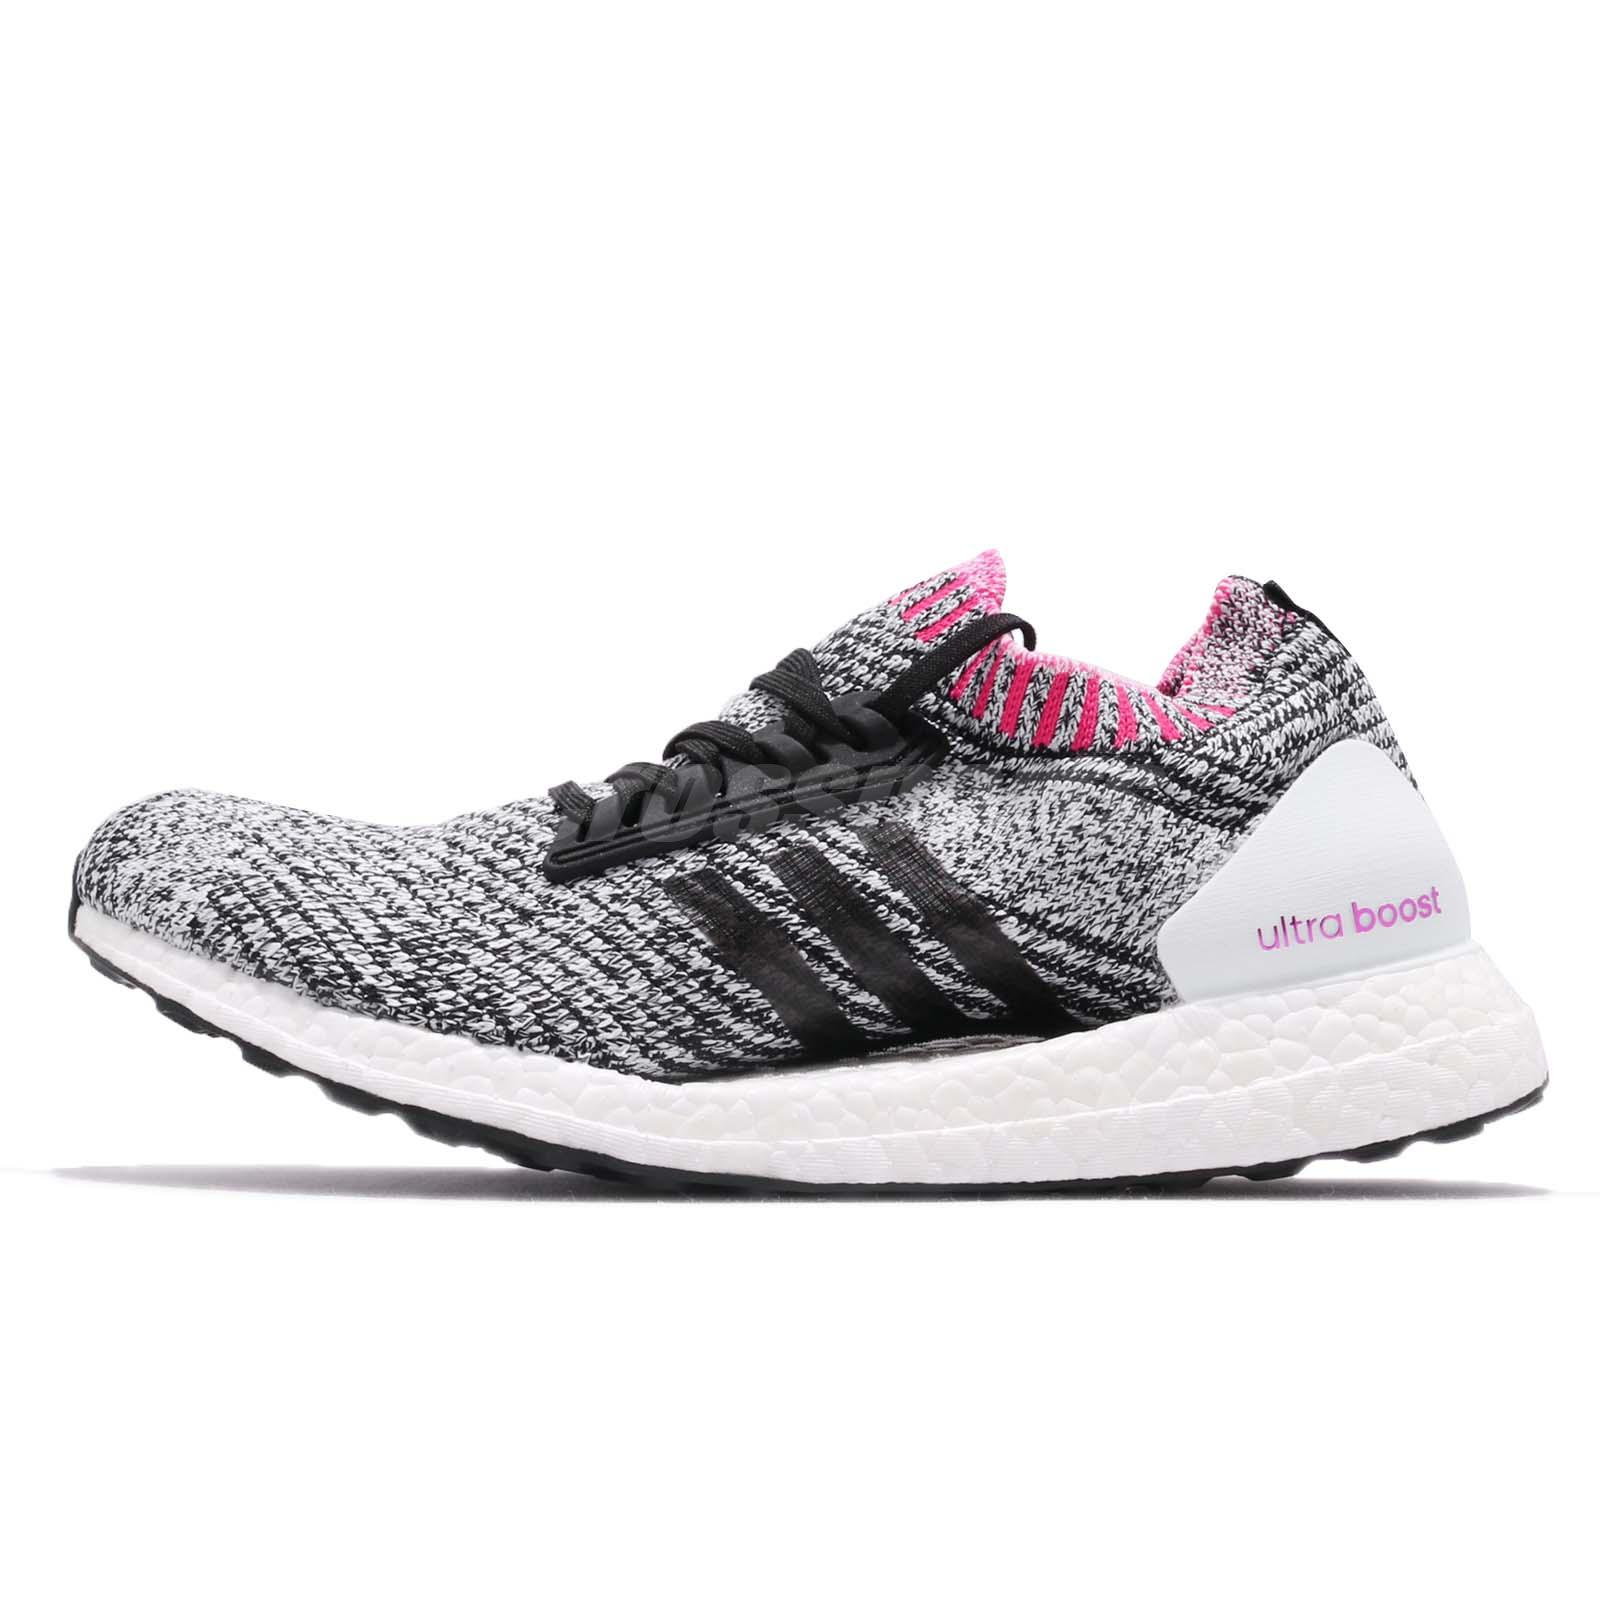 1e4afa26379 adidas UltraBOOST X White Black Shock Pink Women Running Shoes Sneakers  BB6524